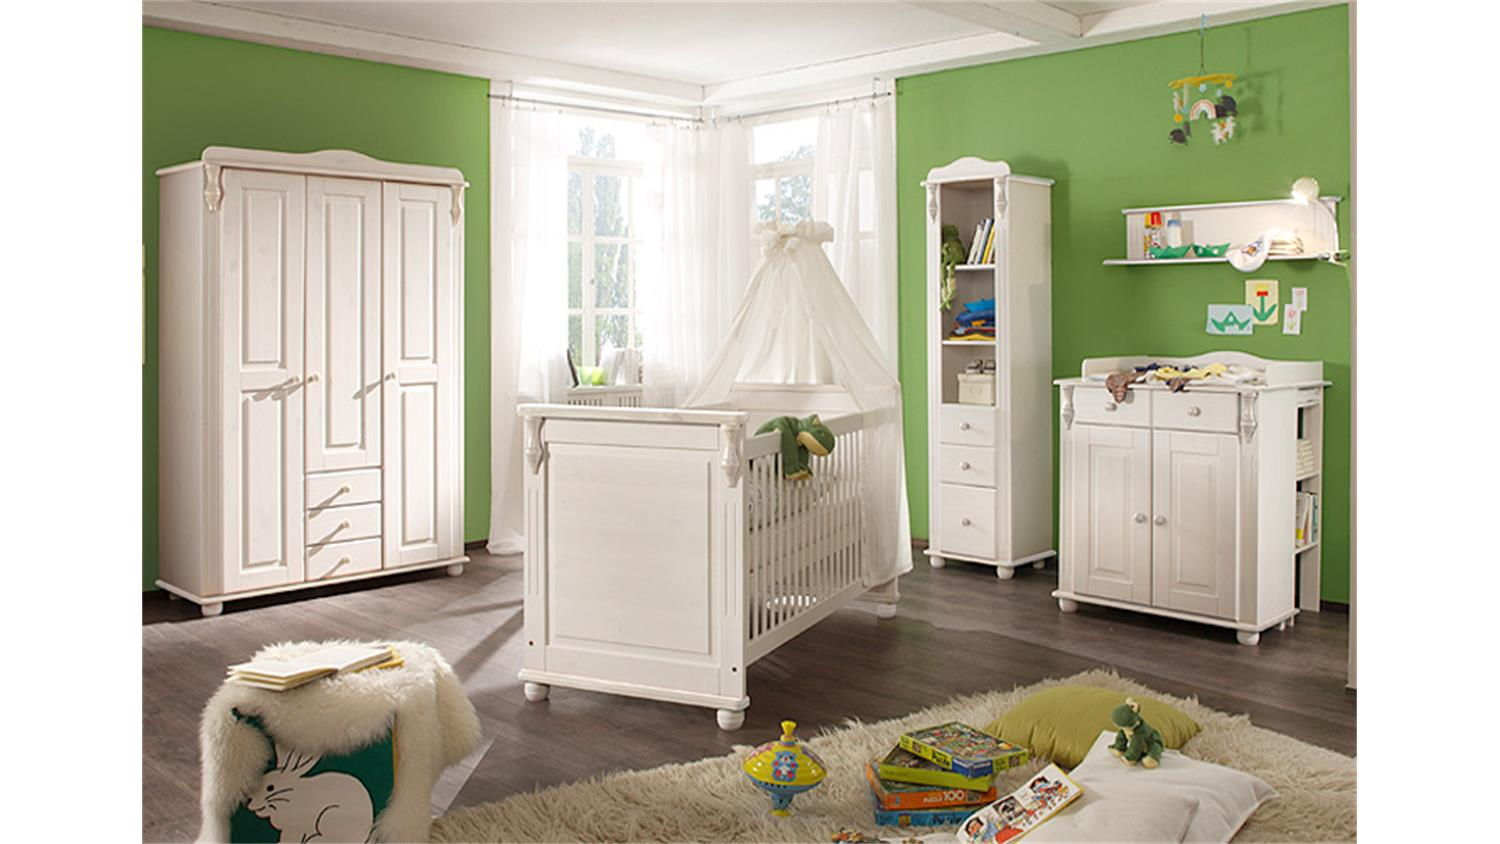 babyzimmer set lara ii kiefer massiv wei wachs 3 teilig. Black Bedroom Furniture Sets. Home Design Ideas